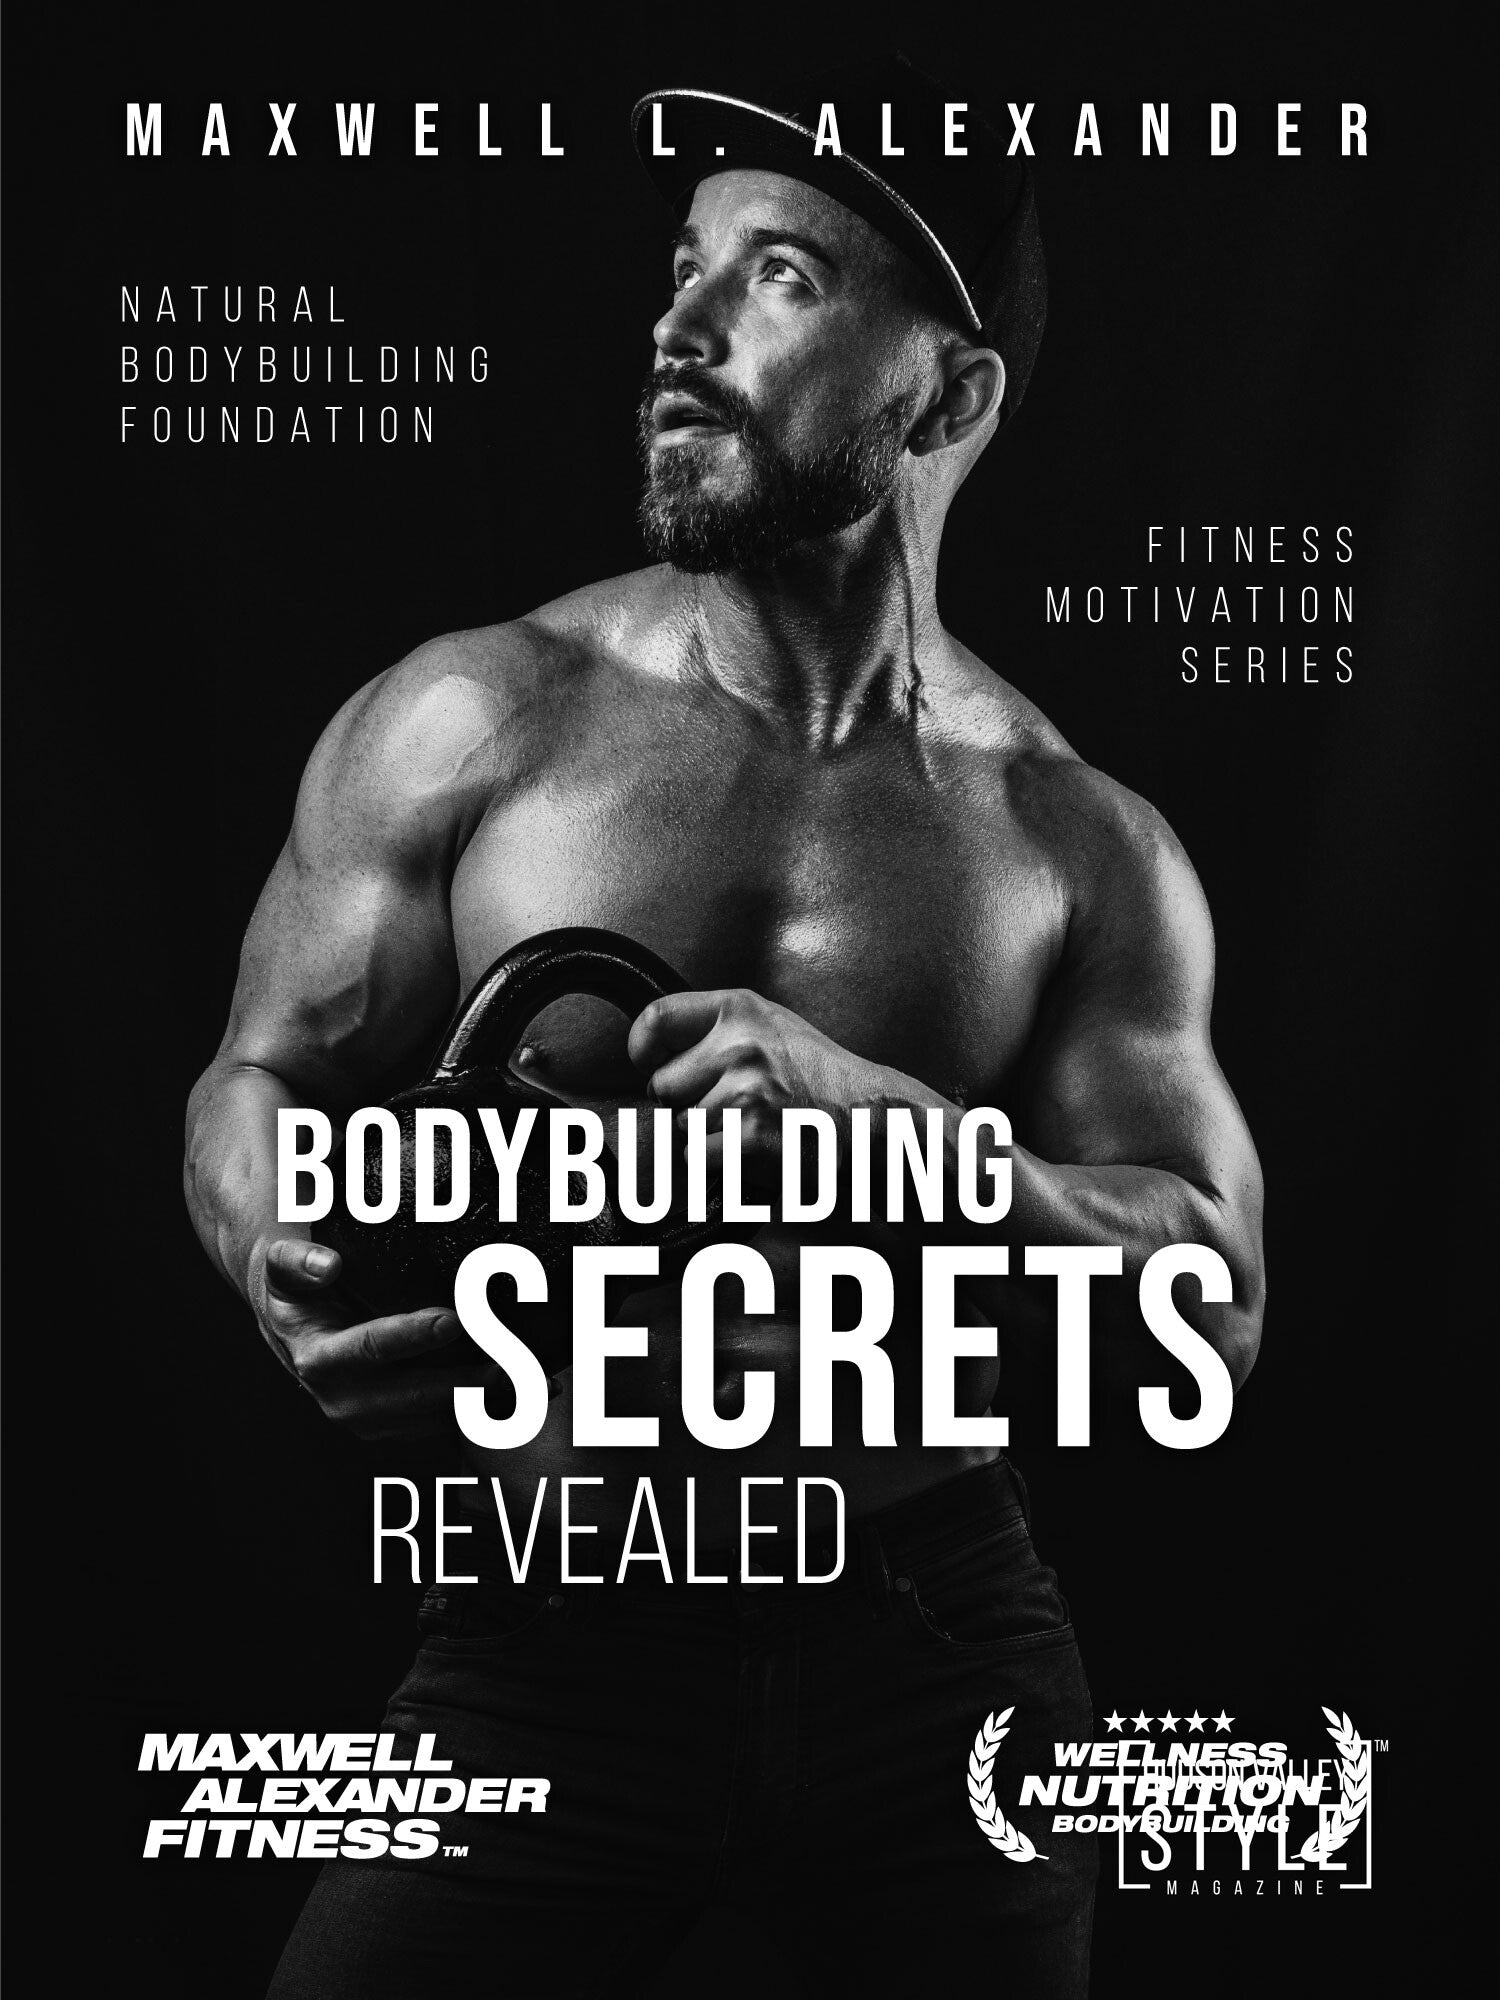 How to Create a Custom Bodybuilding Program – Bodybuilding 101 with Coach Maxwell Alexander, MA, BFA, ISSA Certified Fitness Trainer, ISSA Certified Bodybuilding Coach – Best Gay OnlyFans Fitness Model – Fitness and Bodybuilding Photography by Duncan Avenue Studios, New York